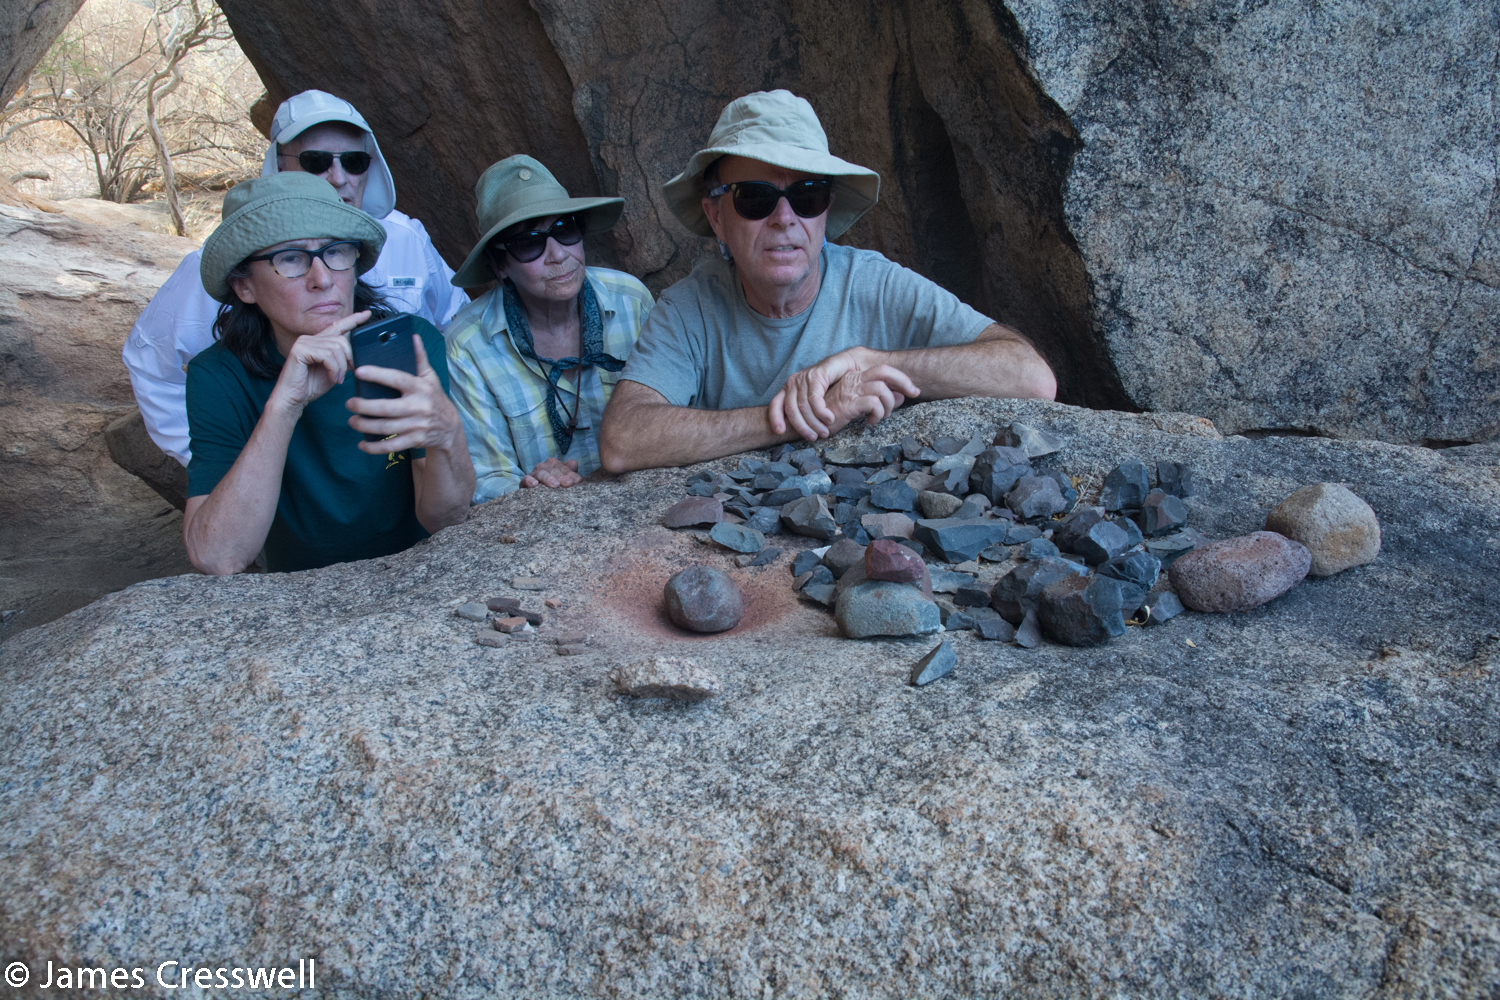 The GeoWorld Travel group observing where ochre was prepared for painting the prehistoric rock art, Erongo, Namibia.